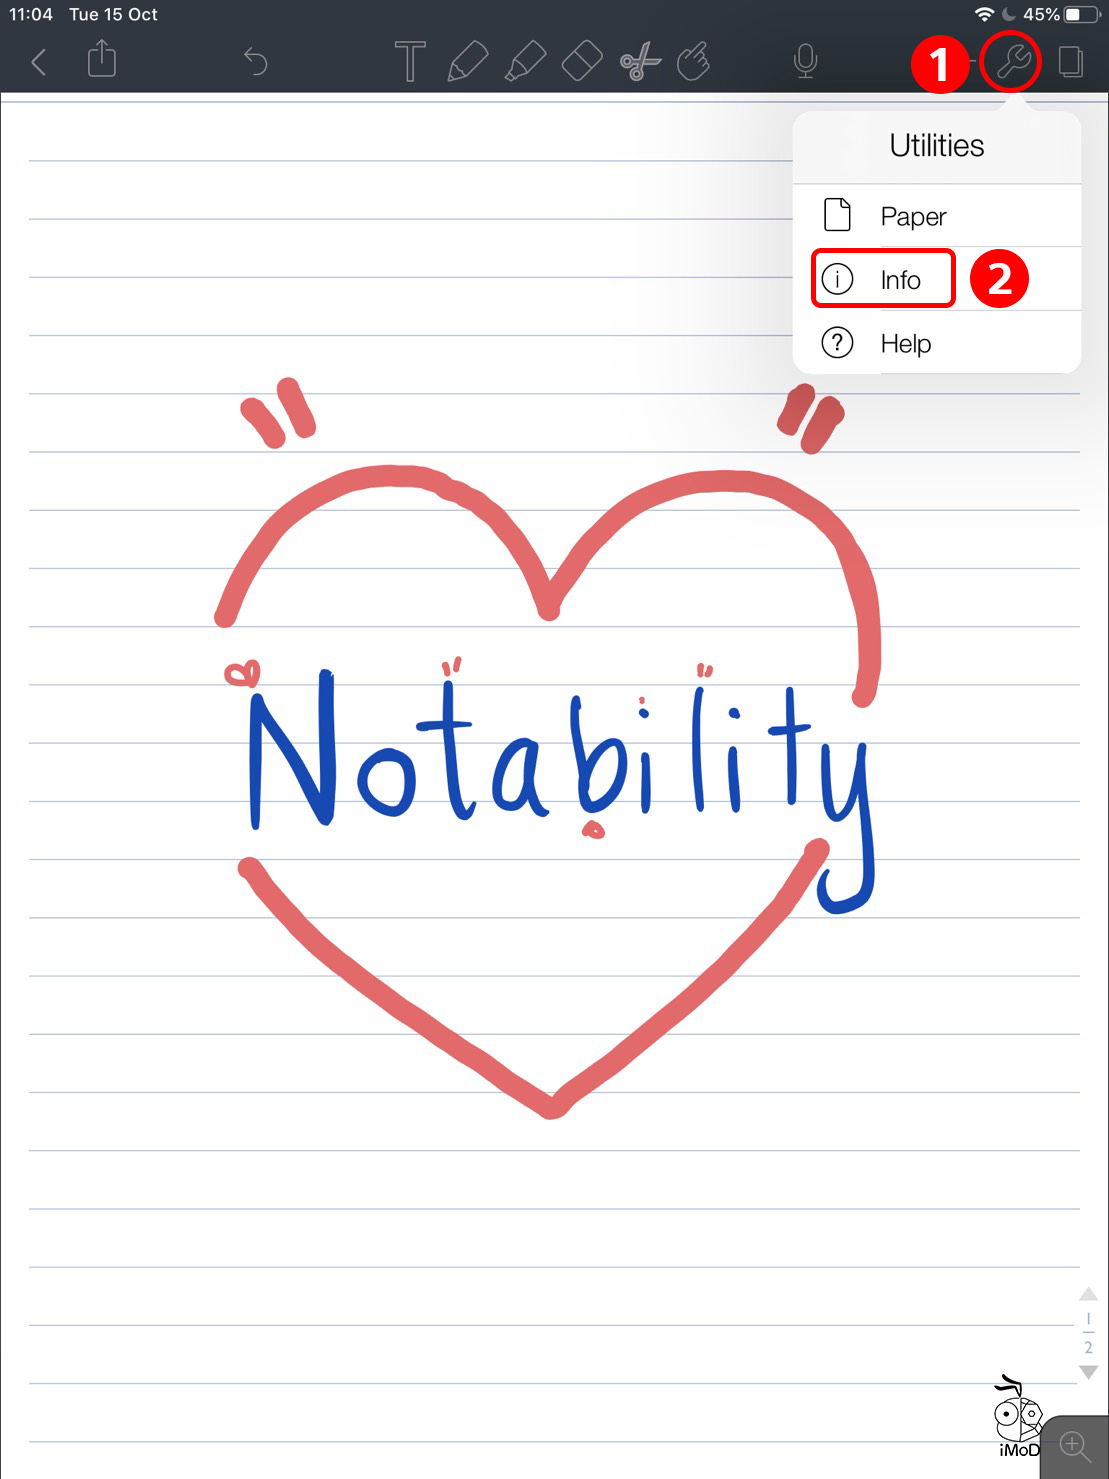 How To Check Date Time When Modify Notability 01